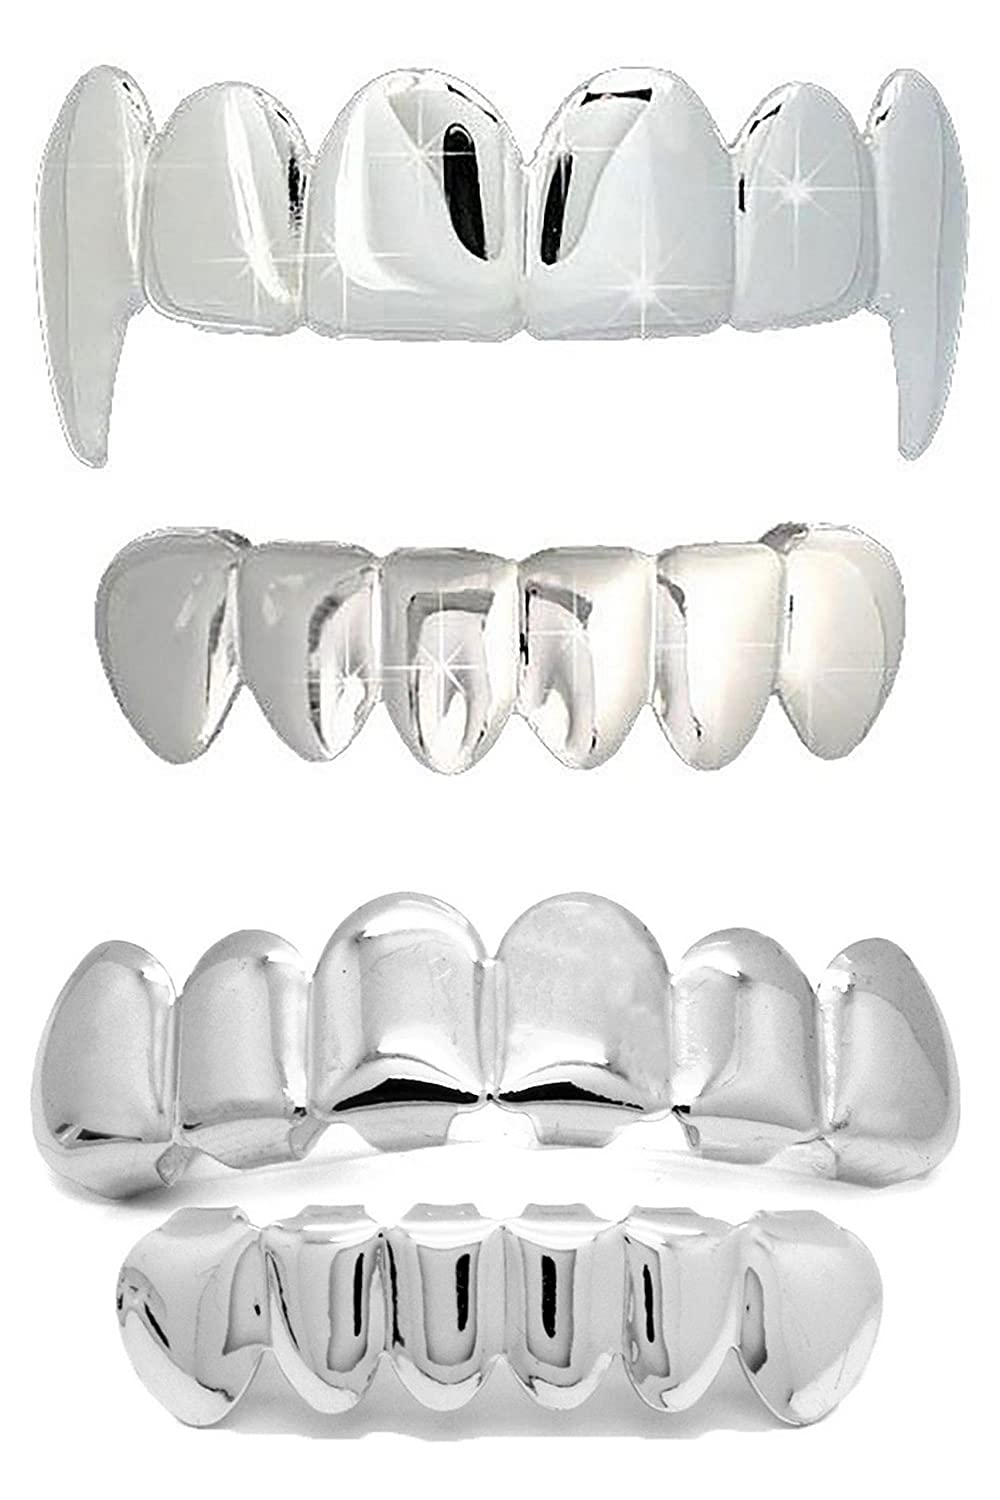 NewAgeBling Fangs & Plain Grillz 4 pc Combo Set Silver Plated Top Bottom Teeth Mouth Grills w/Molds - 332-325